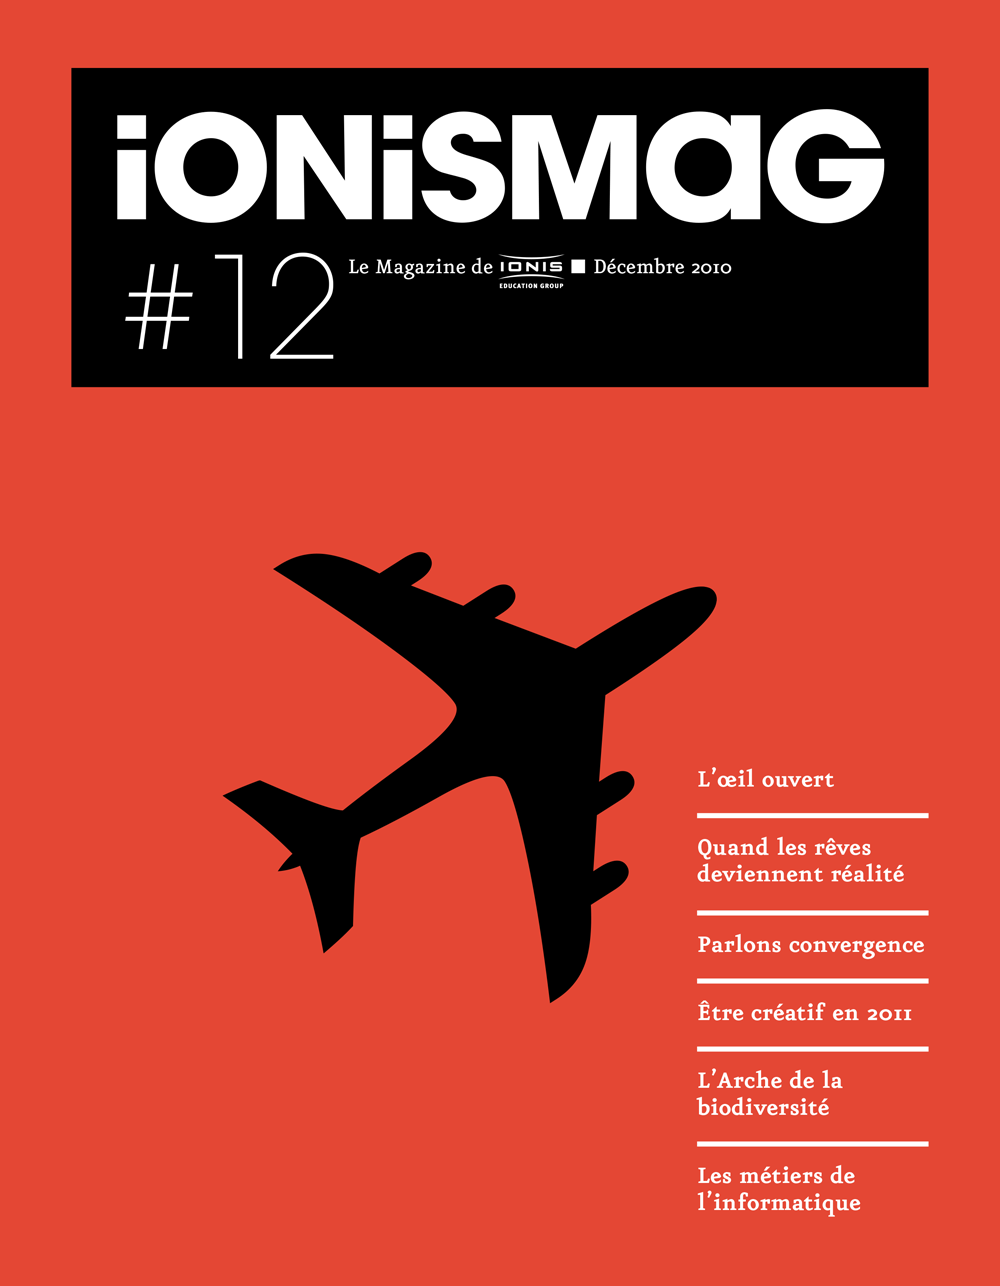 IONIS MAG 12